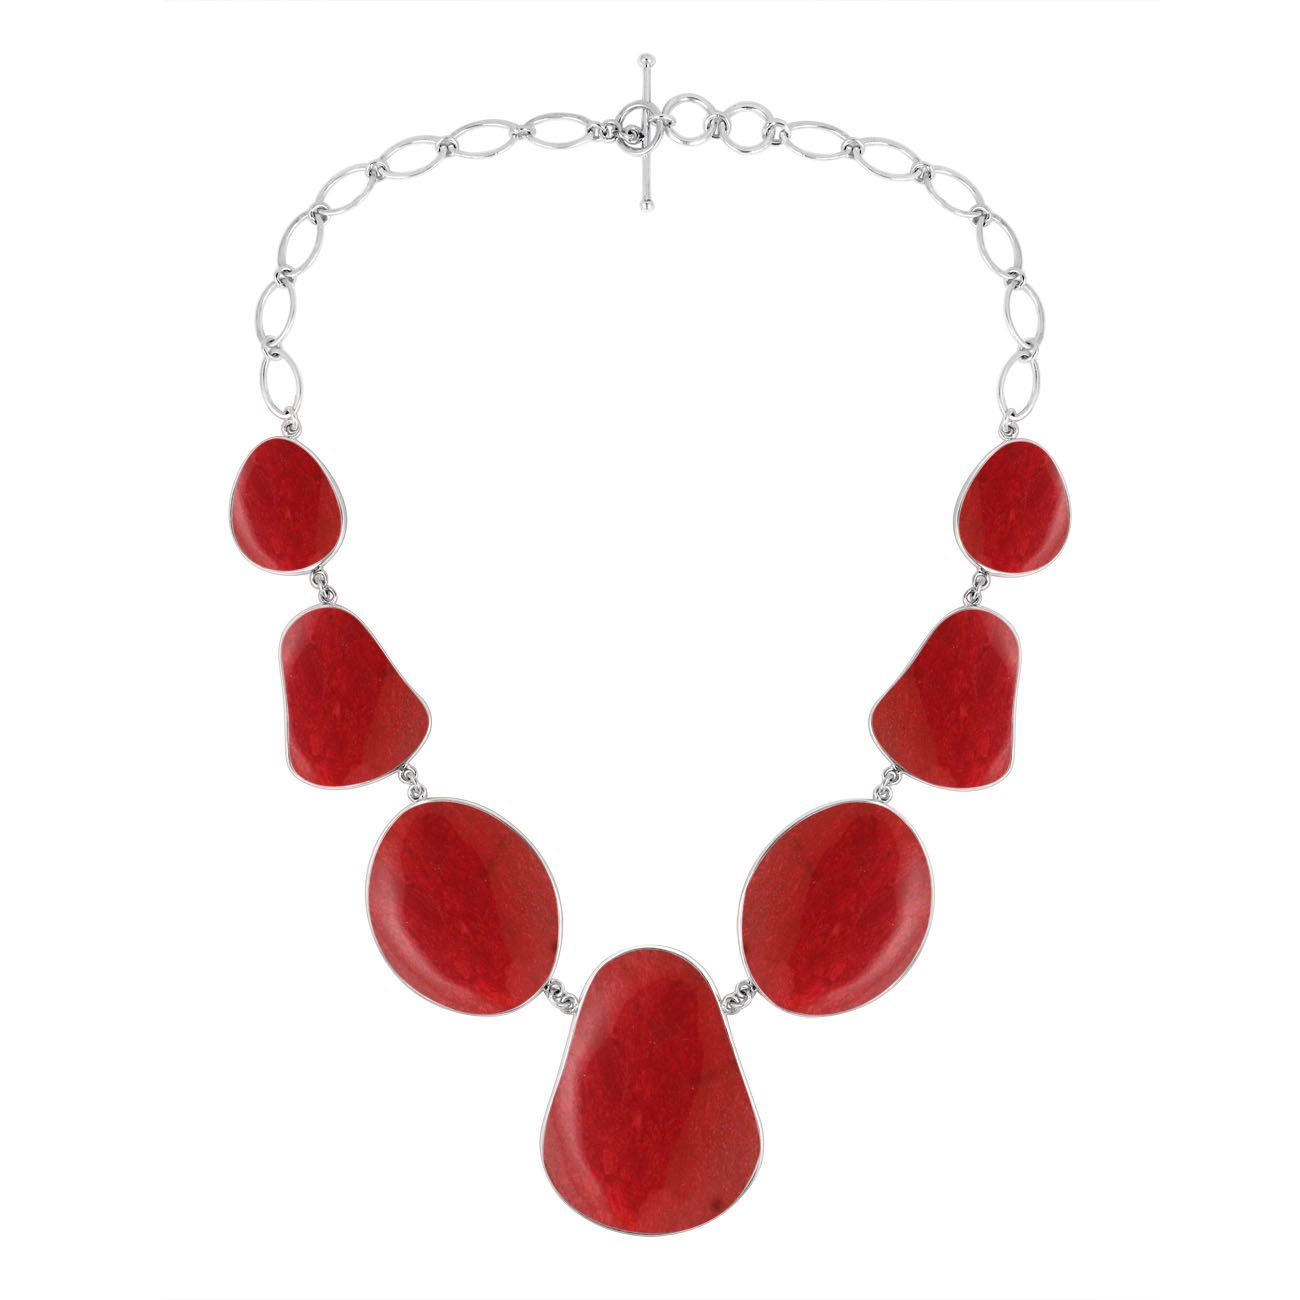 AN-1009-CR Sterling Silver Necklace With Coral by Bali Designs